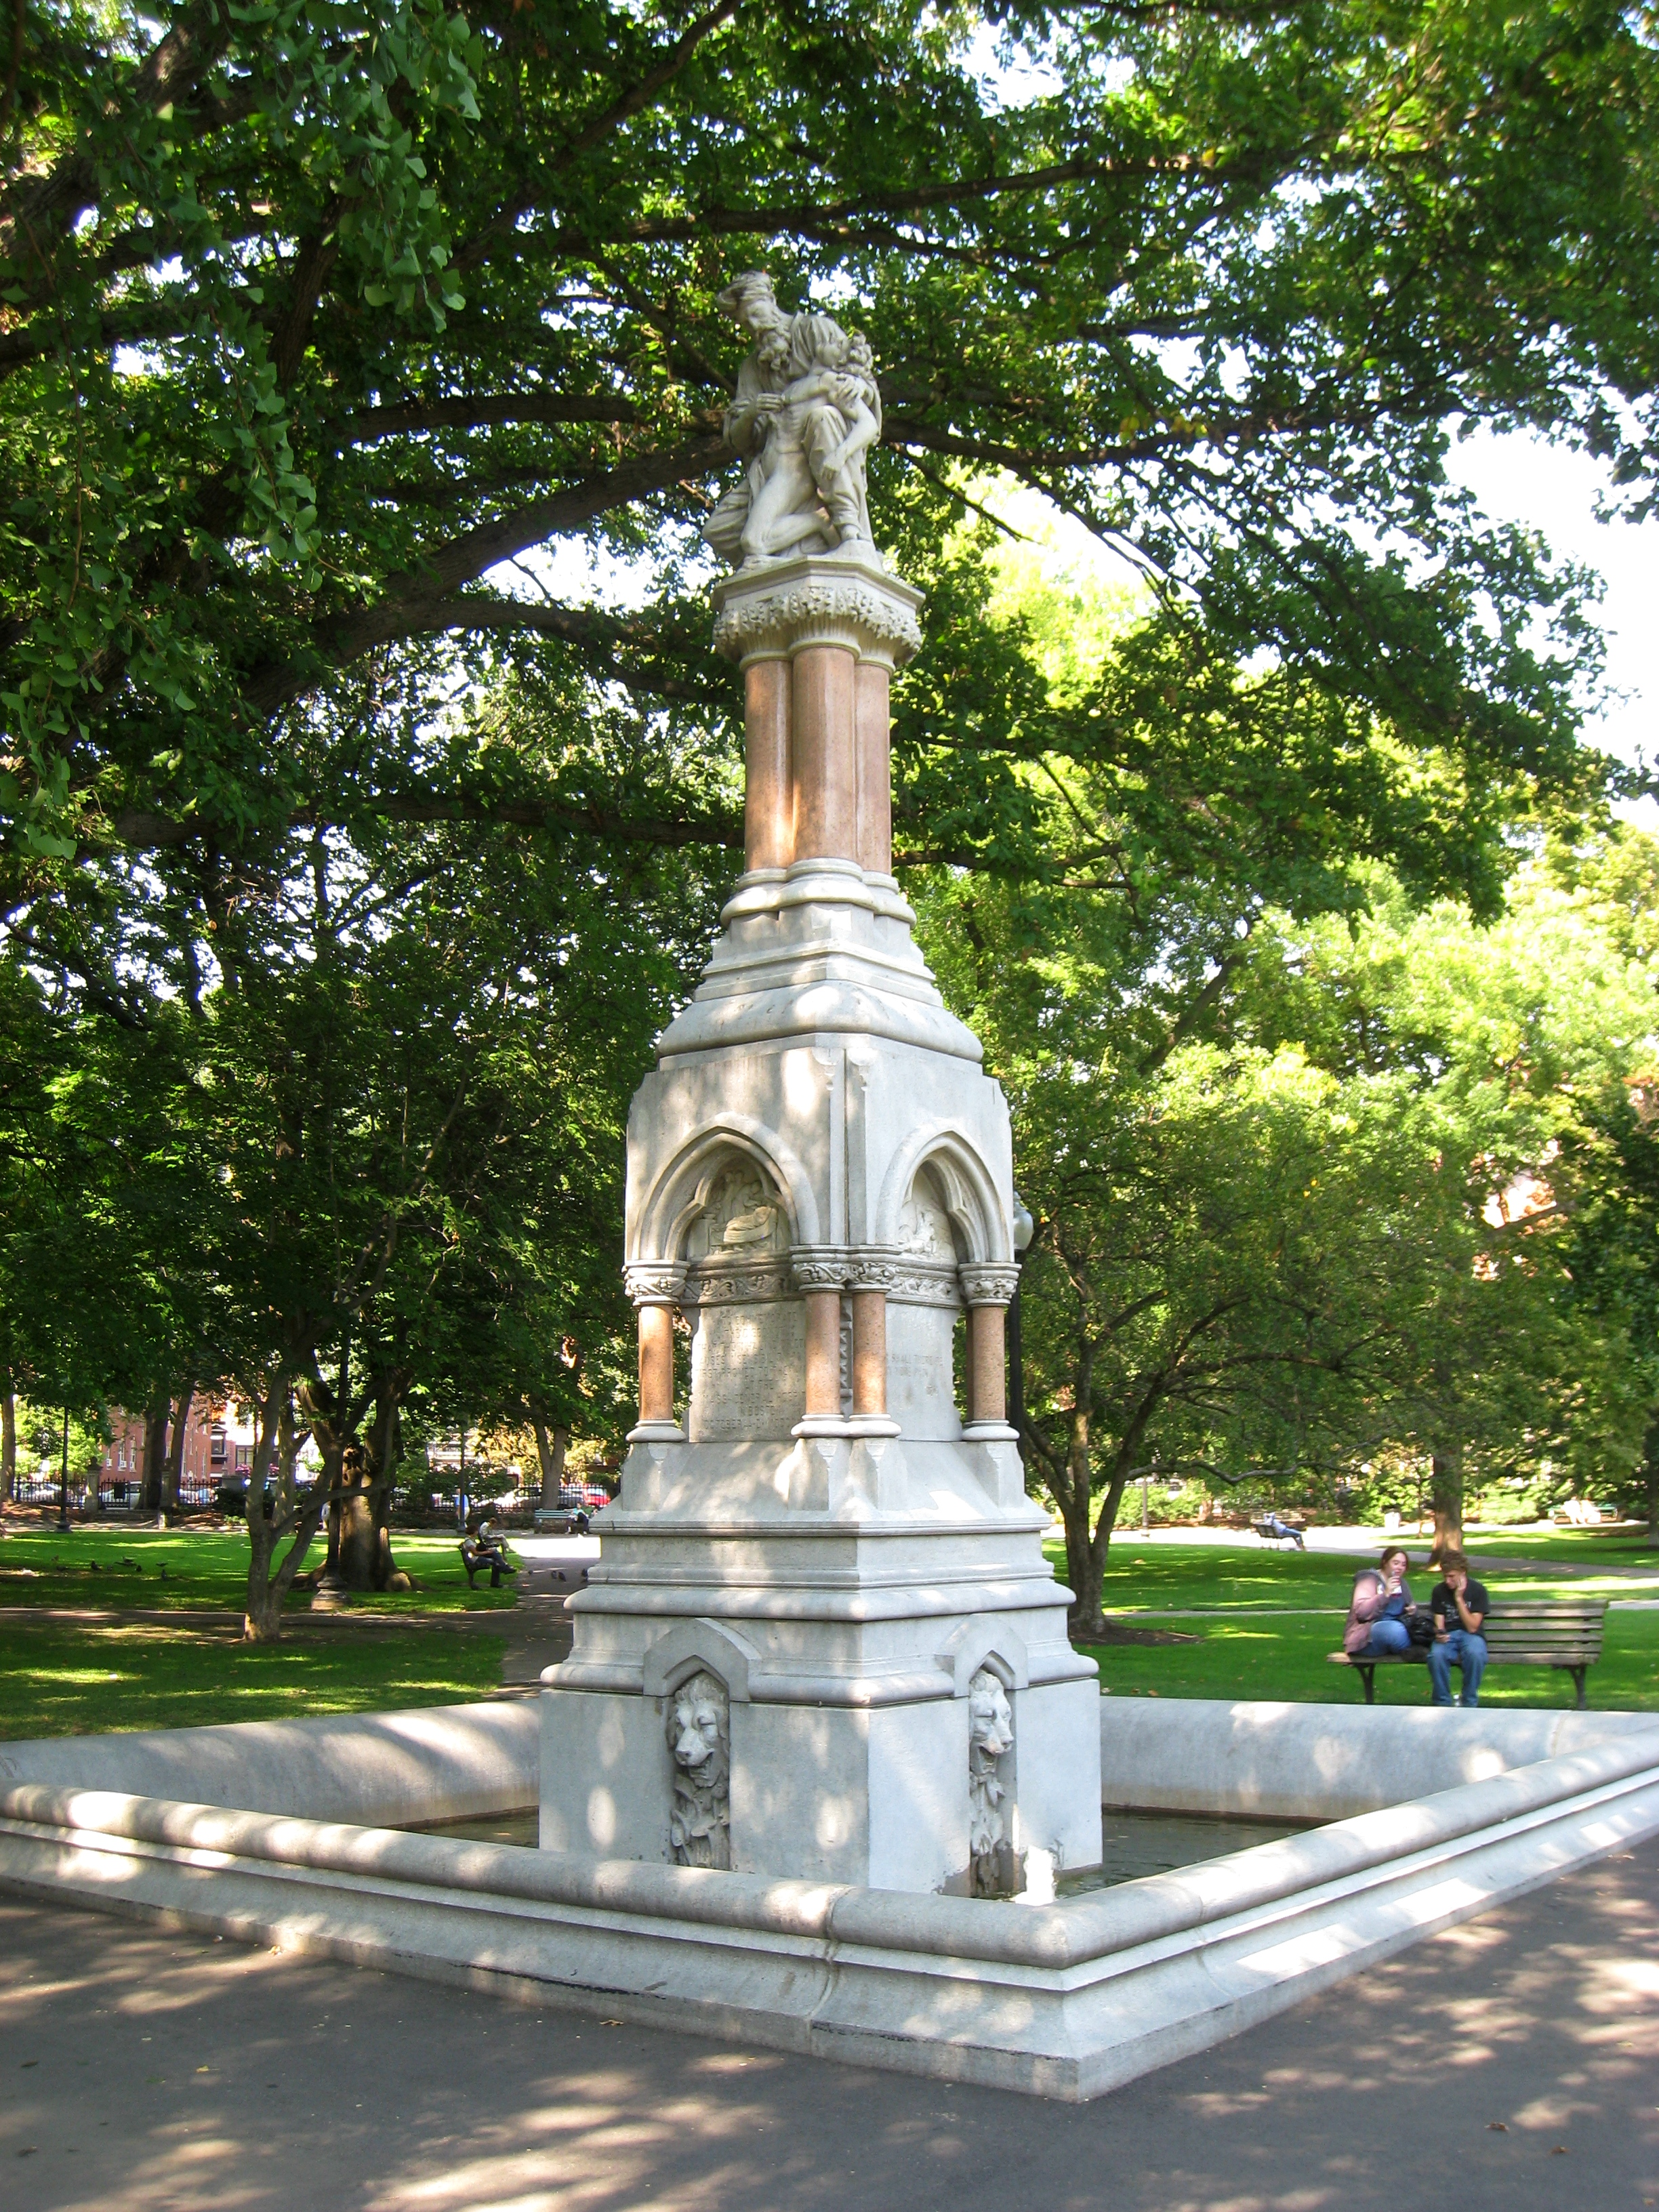 The Ether Monument (image from Wikimedia)